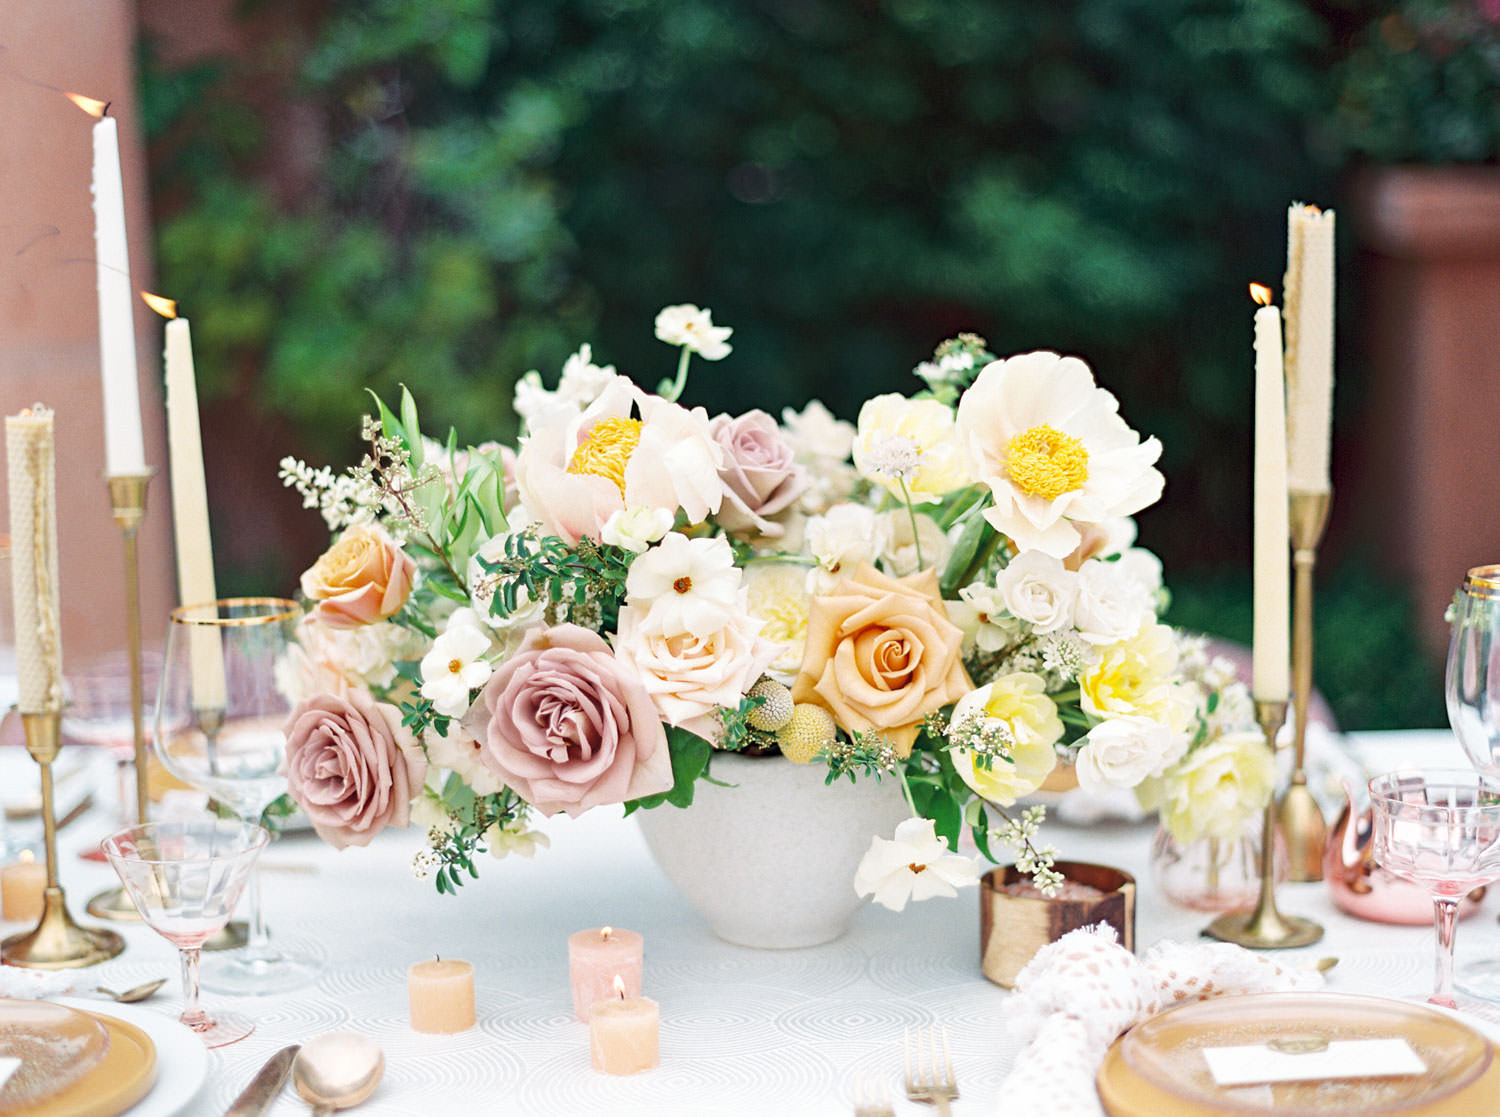 Reception table with textured ivory linen, blush mauve velvet chairs, golden taper candles, golden plates and flatware, and lush centerpieces with mauve, ivory, and melon roses with greenery. Honey and Beekeeper Inspired Wedding at Rancho Valencia on film by Cavin Elizabeth Photography